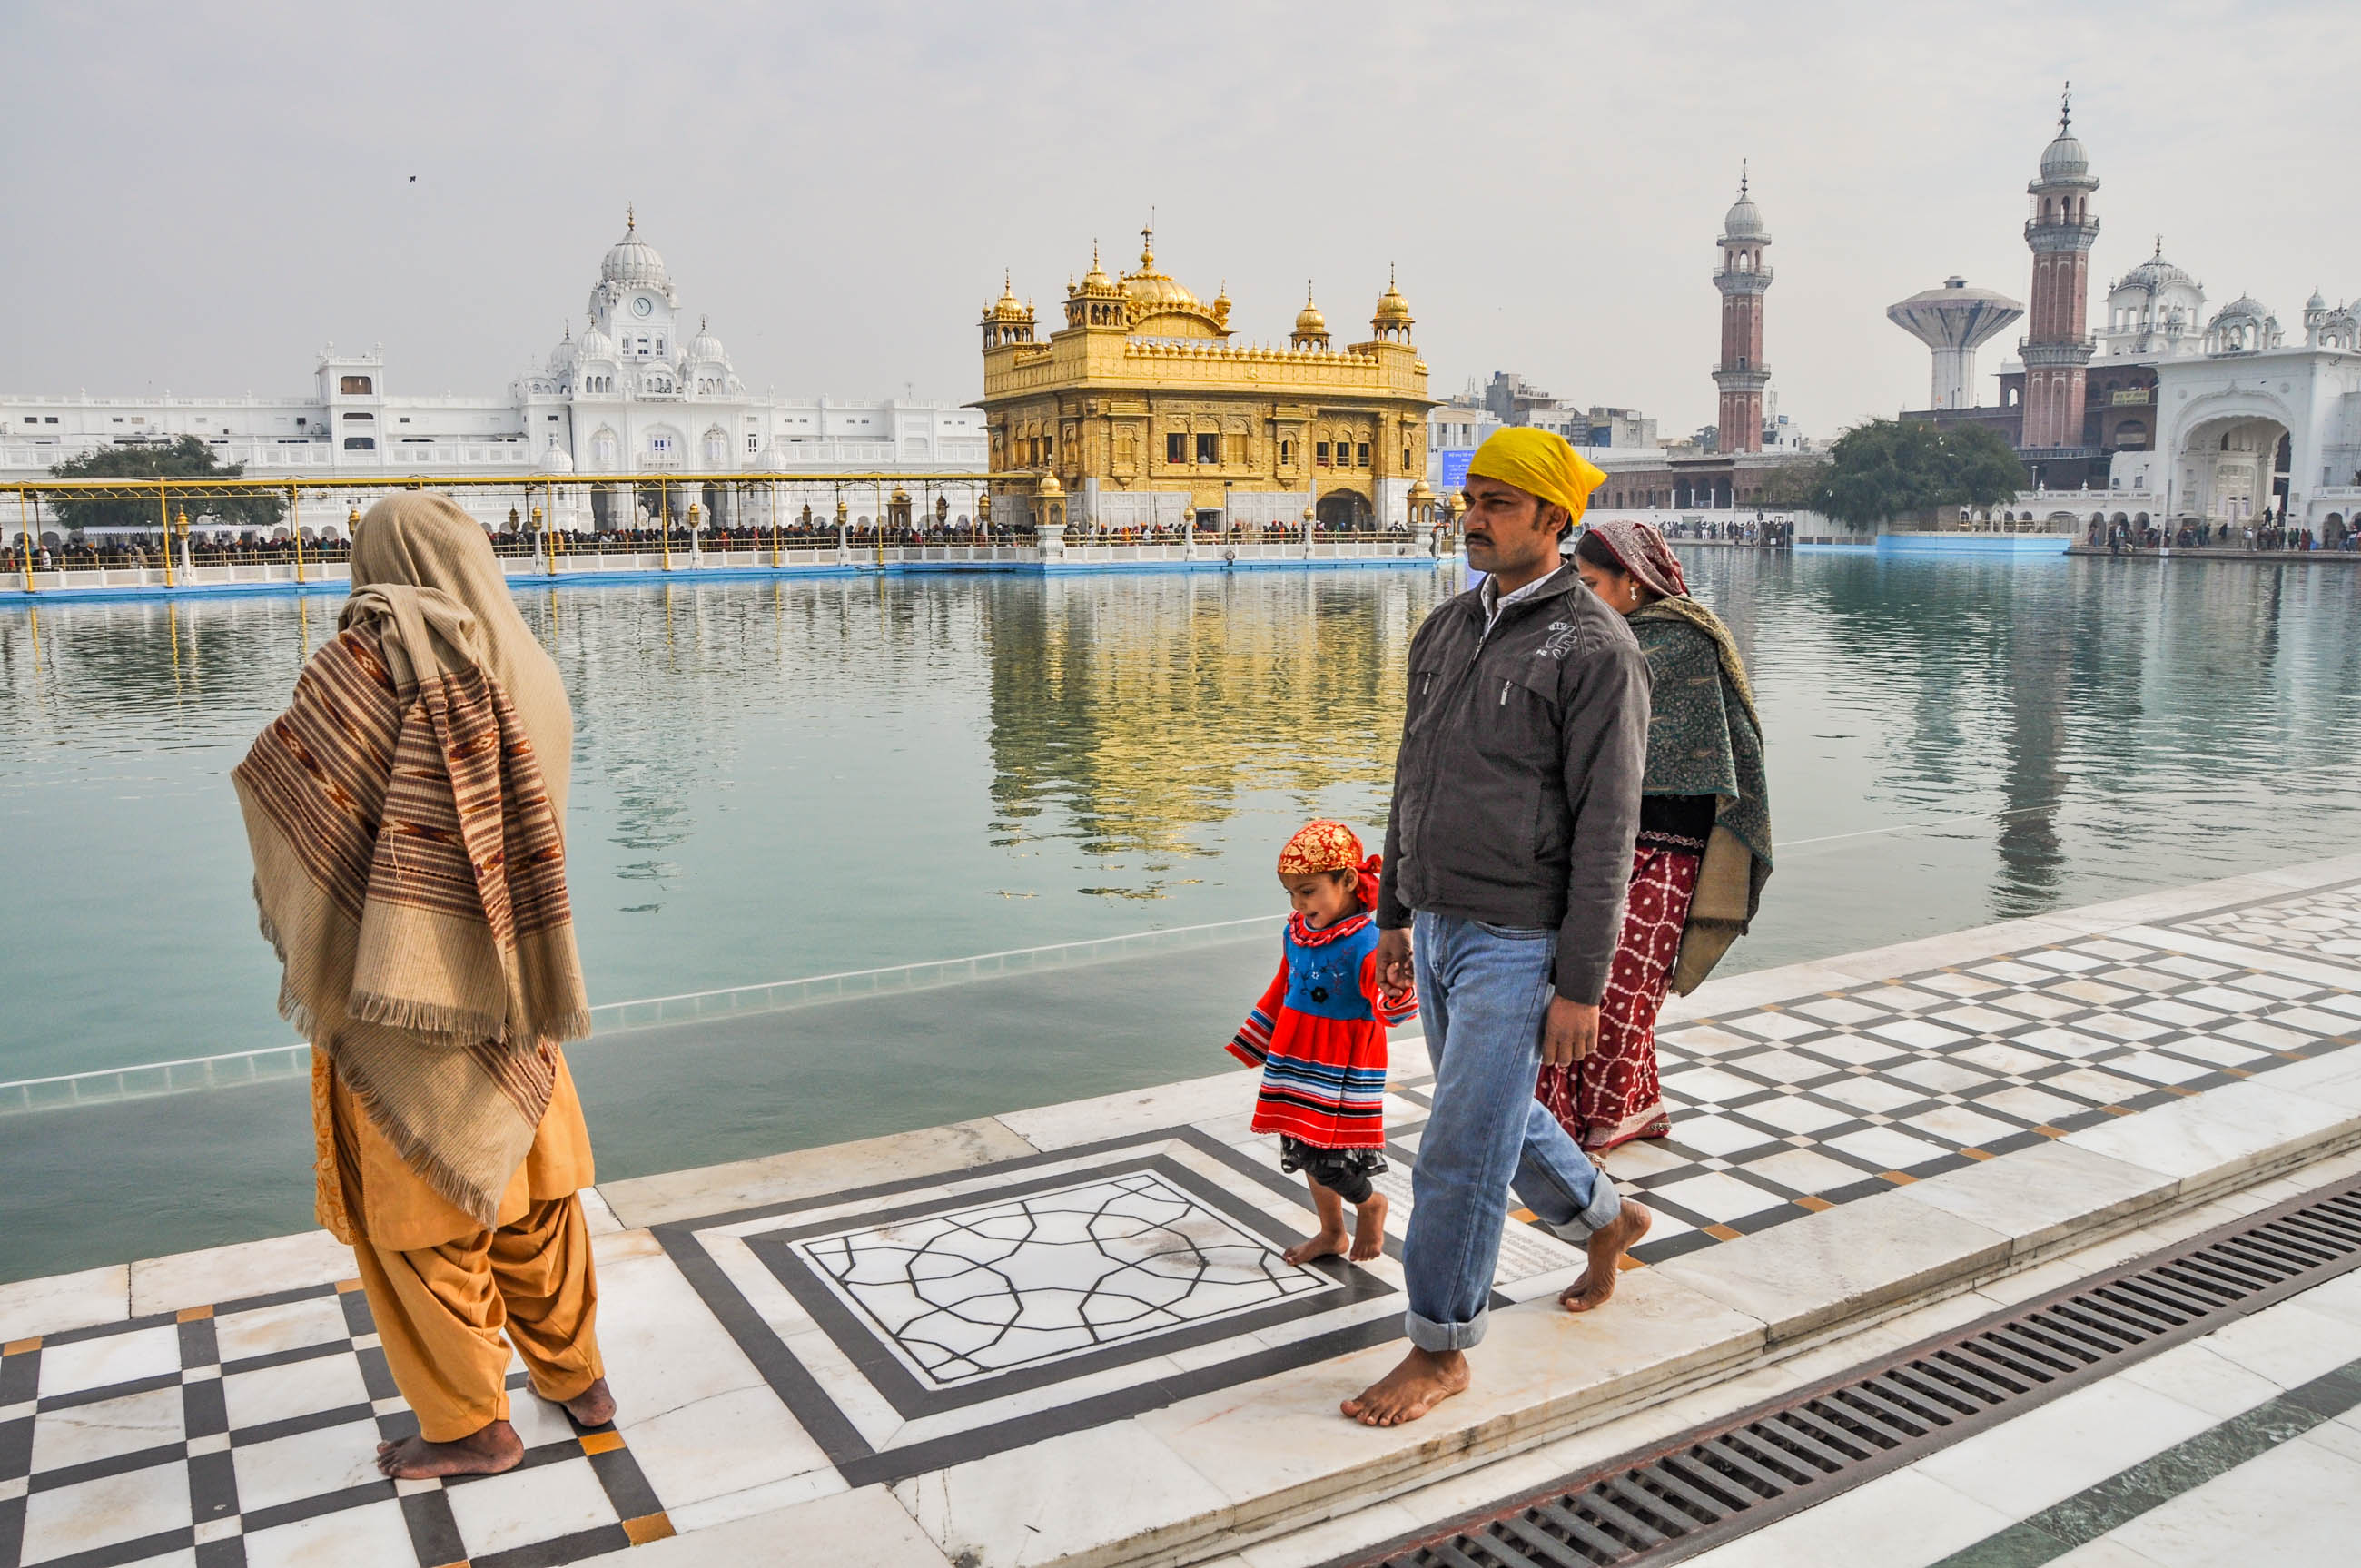 https://bubo.sk/uploads/galleries/4920/tomas_kubus_india_amritsar_dsc_0134.jpg